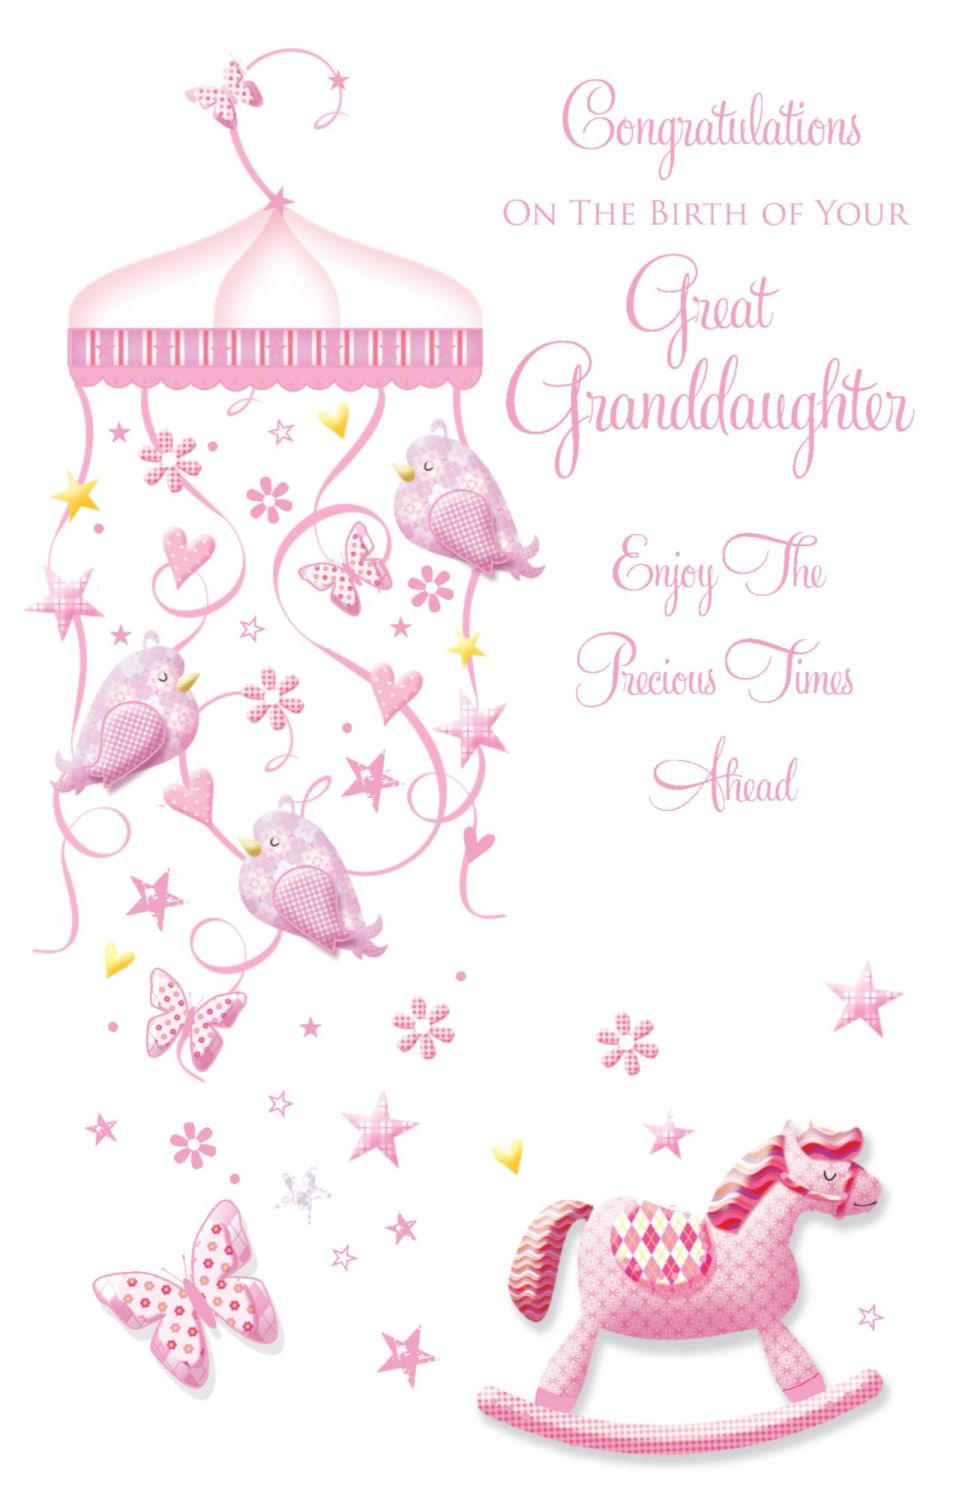 Congratulations On The Birth Of Your Great Granddaughter Card - MODERN Desi